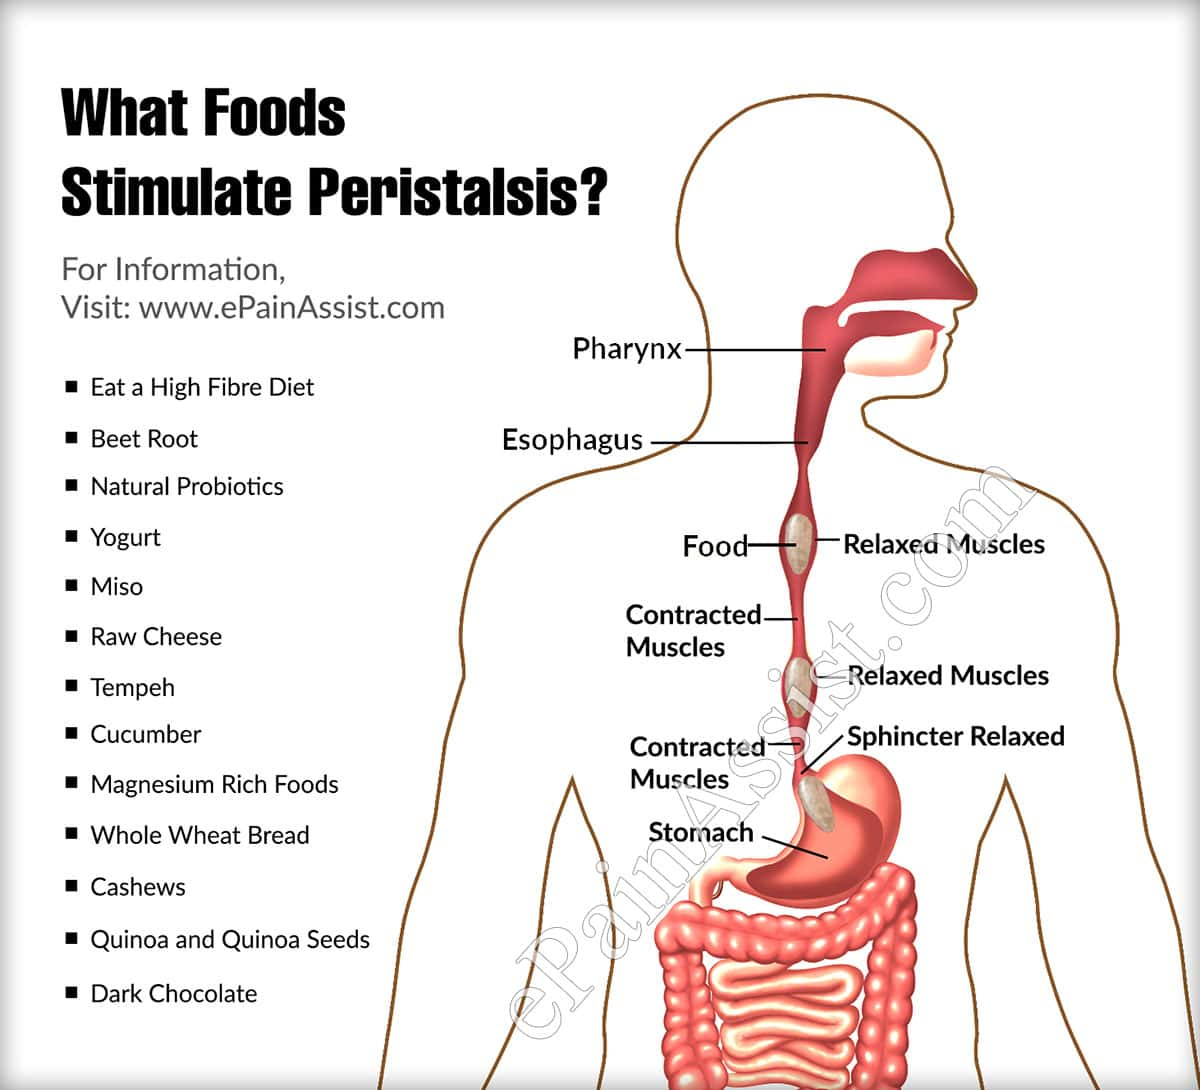 What Foods Stimulate Peristalsis?